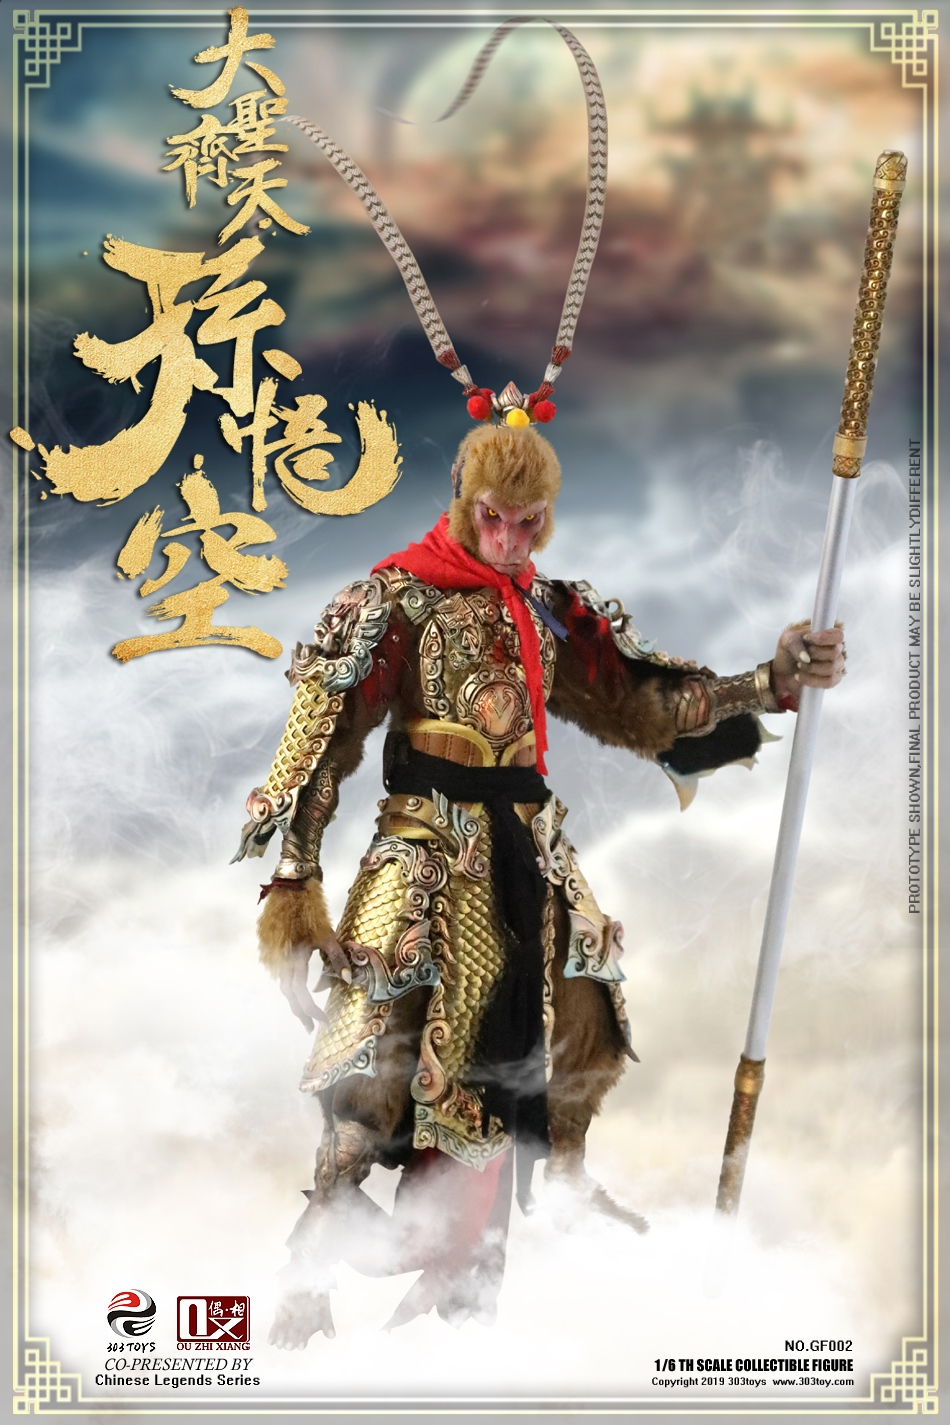 EveningPhase - NEW PRODUCT: 303TOYS x Evening phase: 1/6 National Wind Legend Series - Sun Wukong Monkey King Apocalypse & Dasheng Qitian & Stepping 18090511